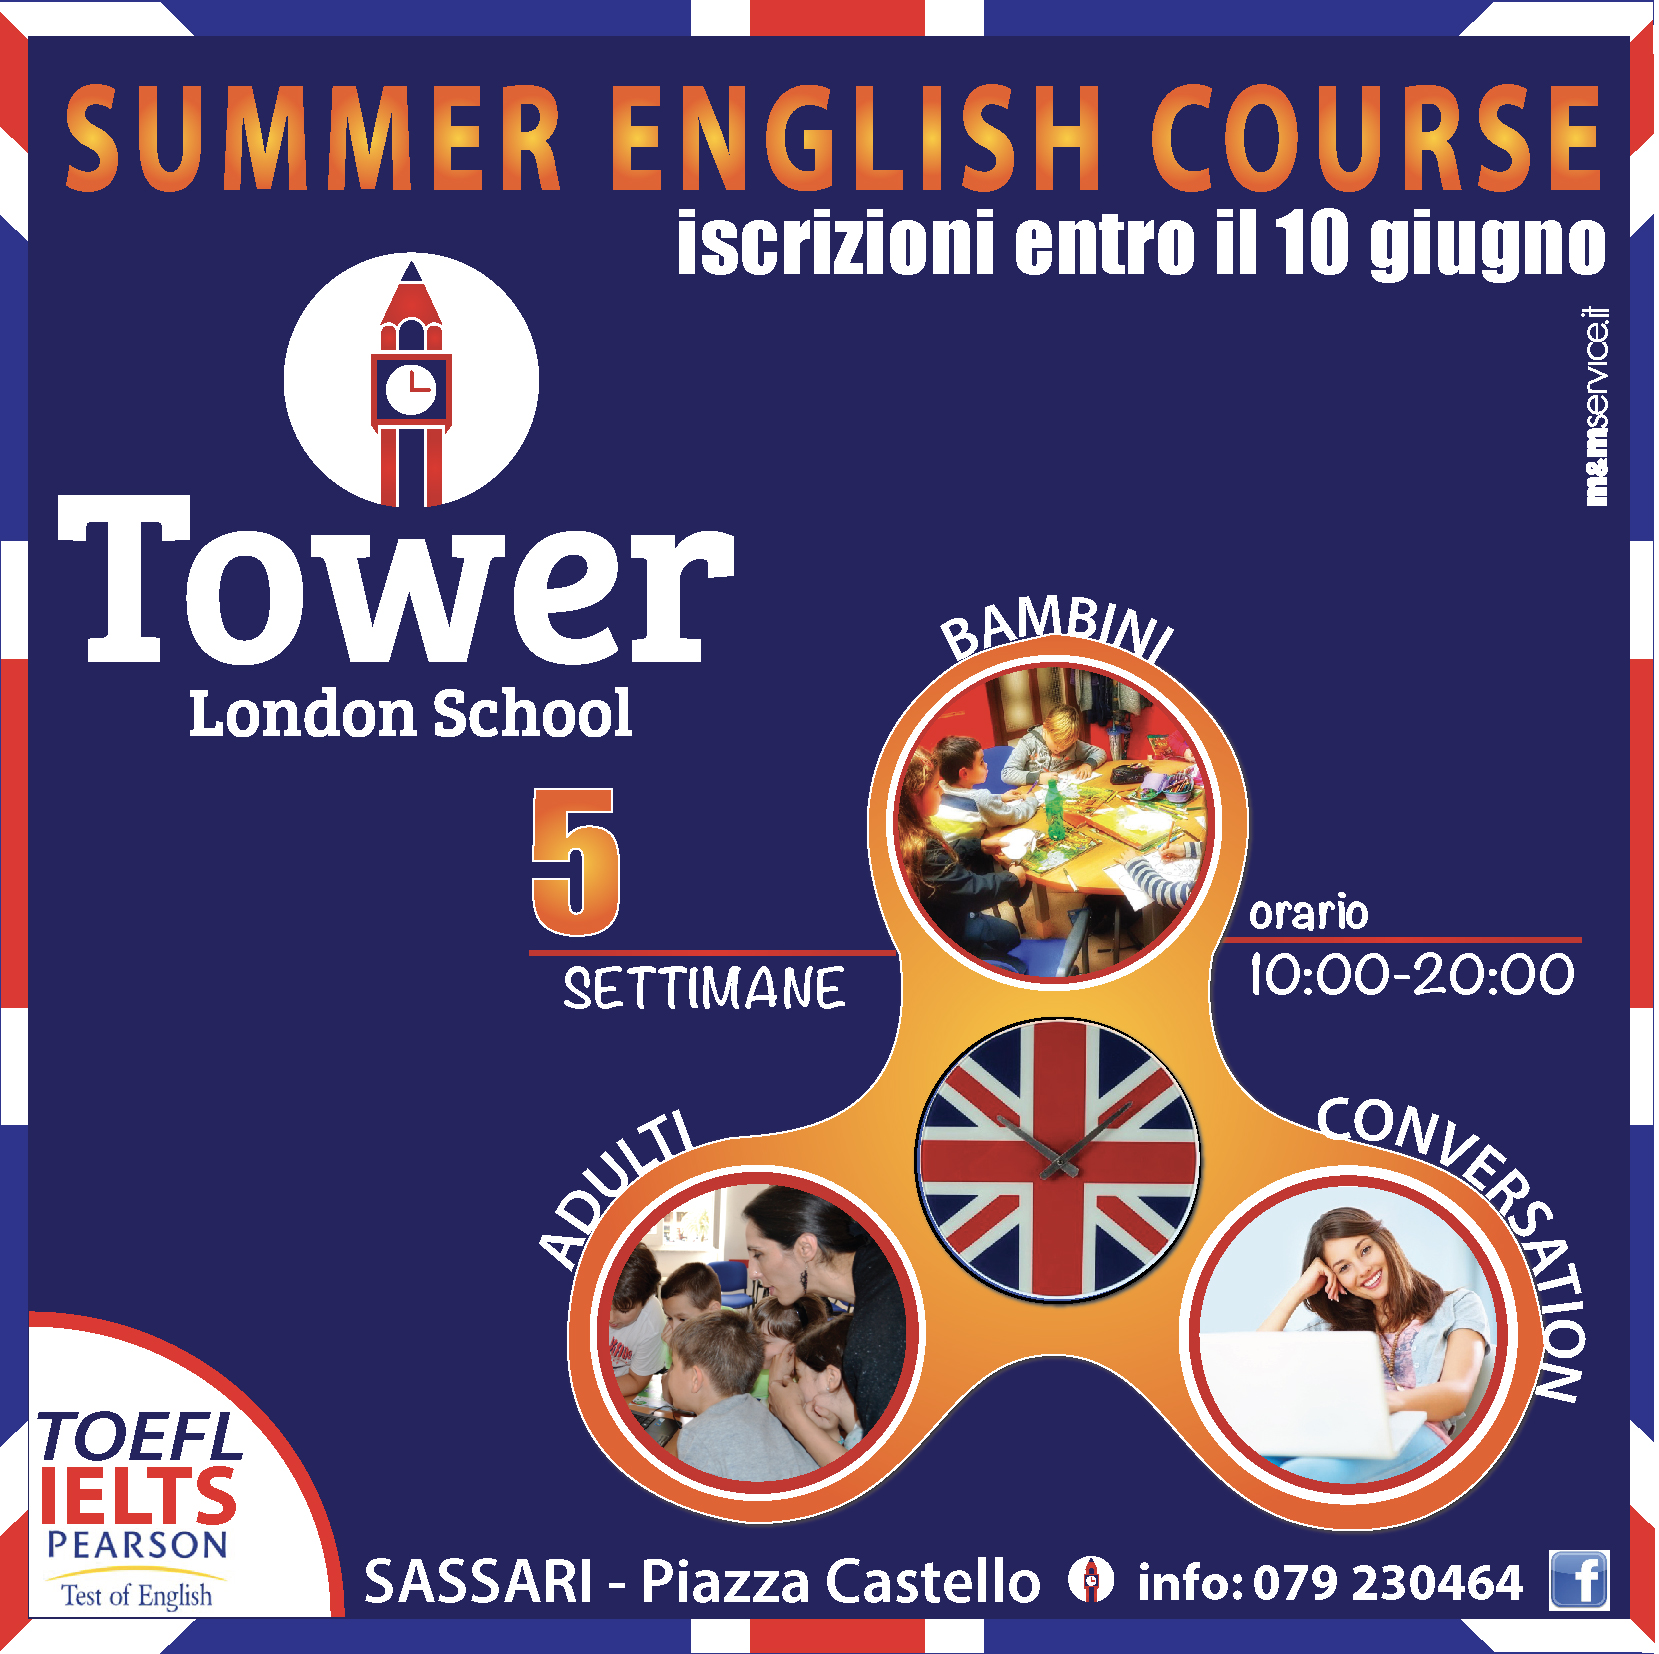 Summer English Course